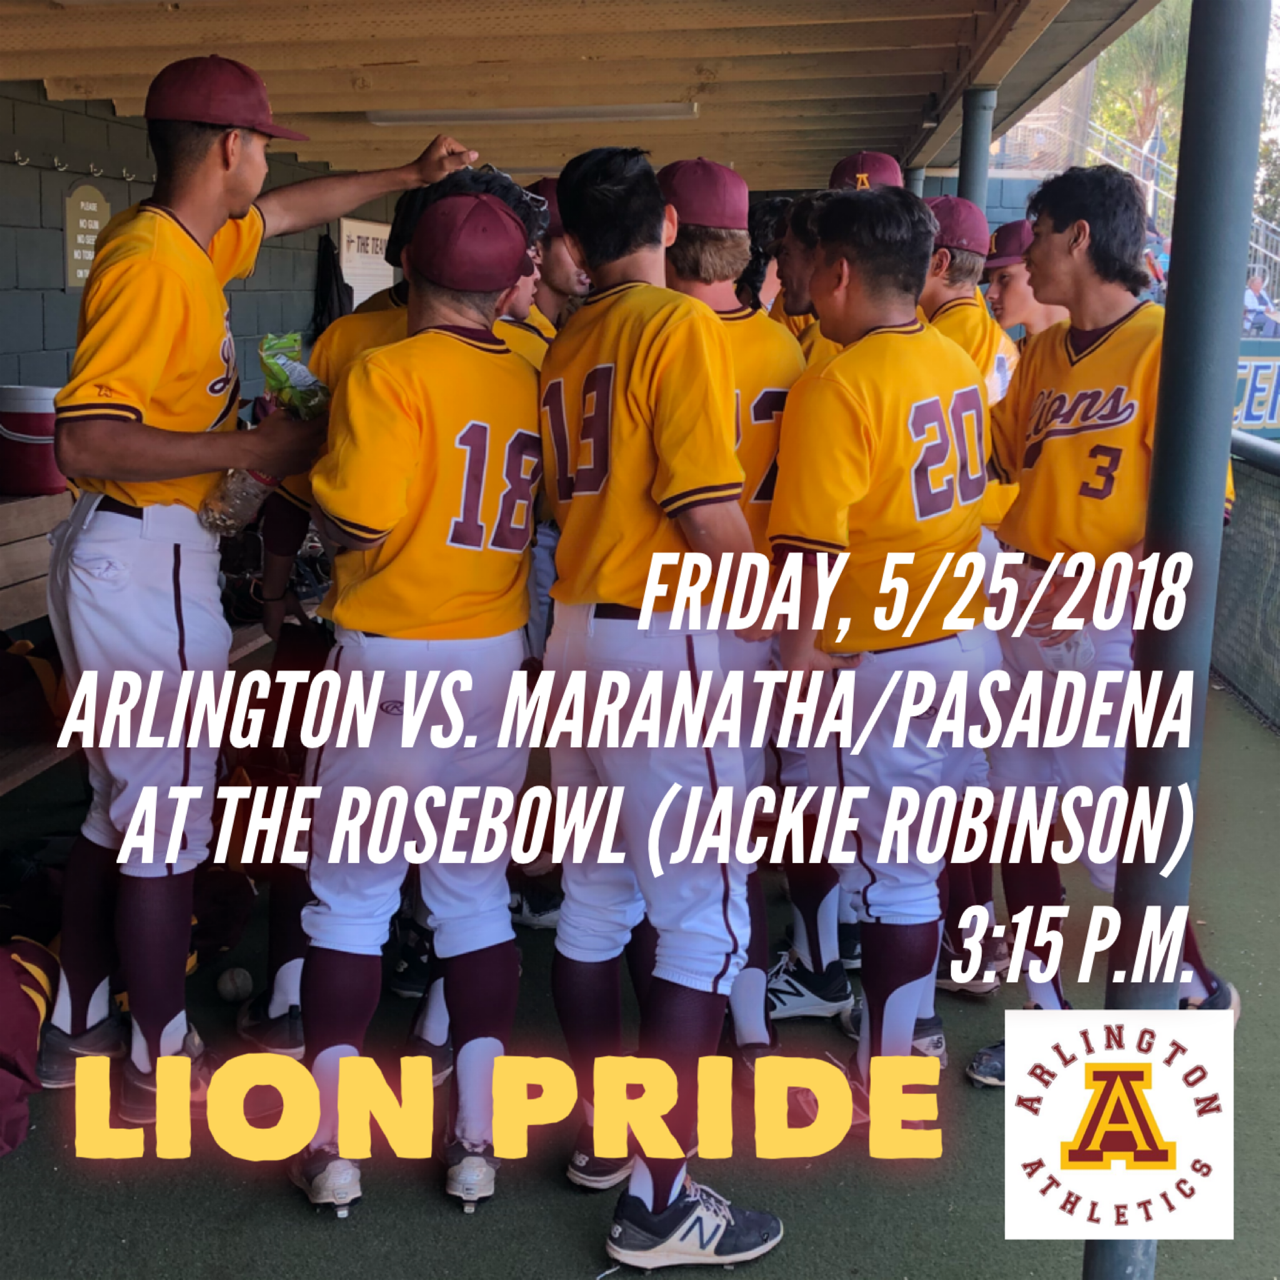 CiF Division III Playoffs Quarterfinals: Arlington Baseball vs. Maranatha/Pasadena at the Rosebowl on Friday, 5/25 at 3:15 p.m.